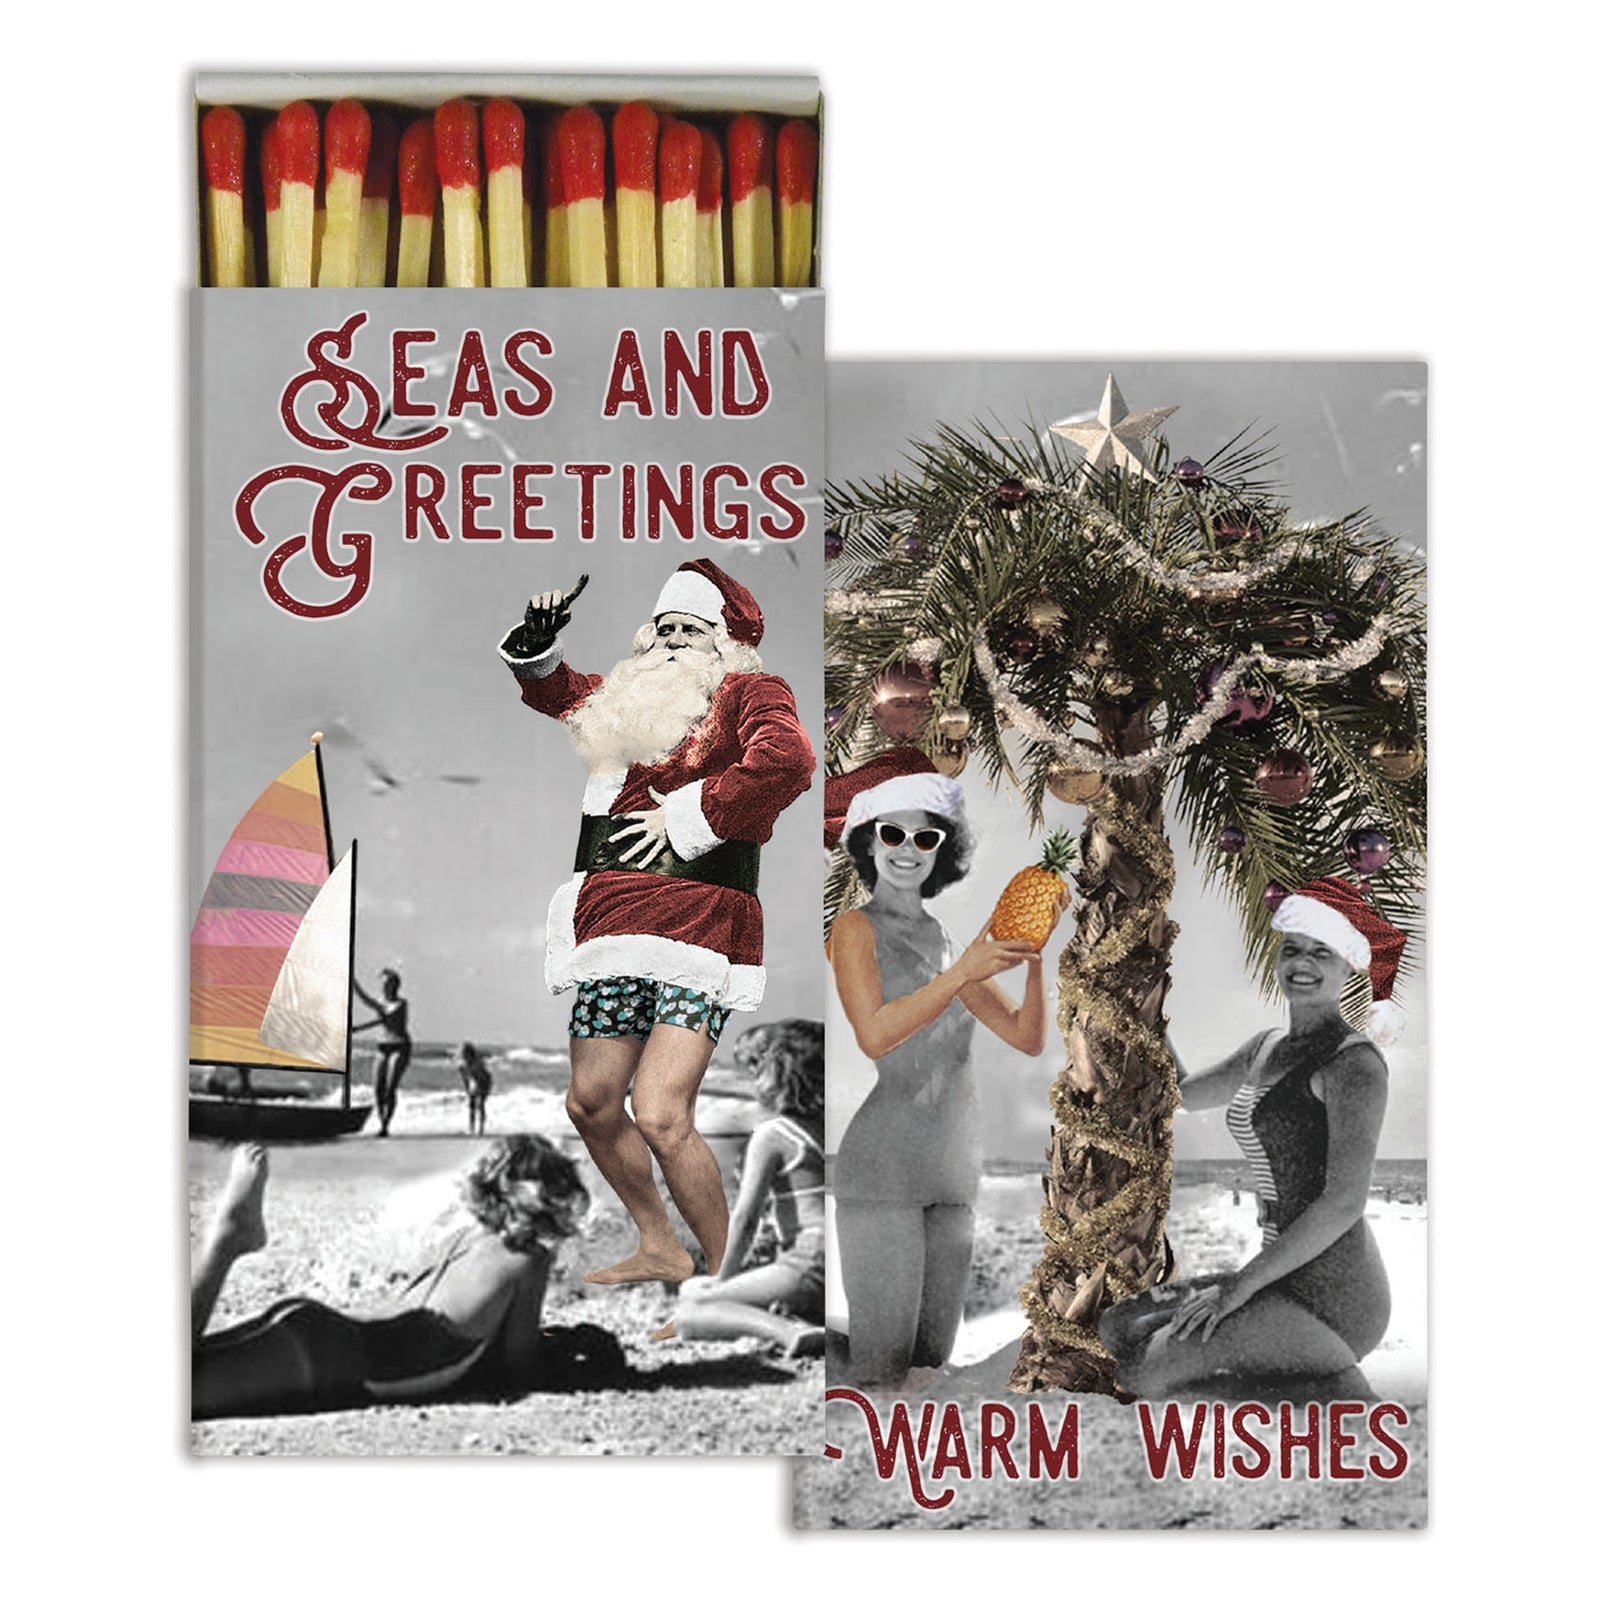 Seas and Greetings Matches